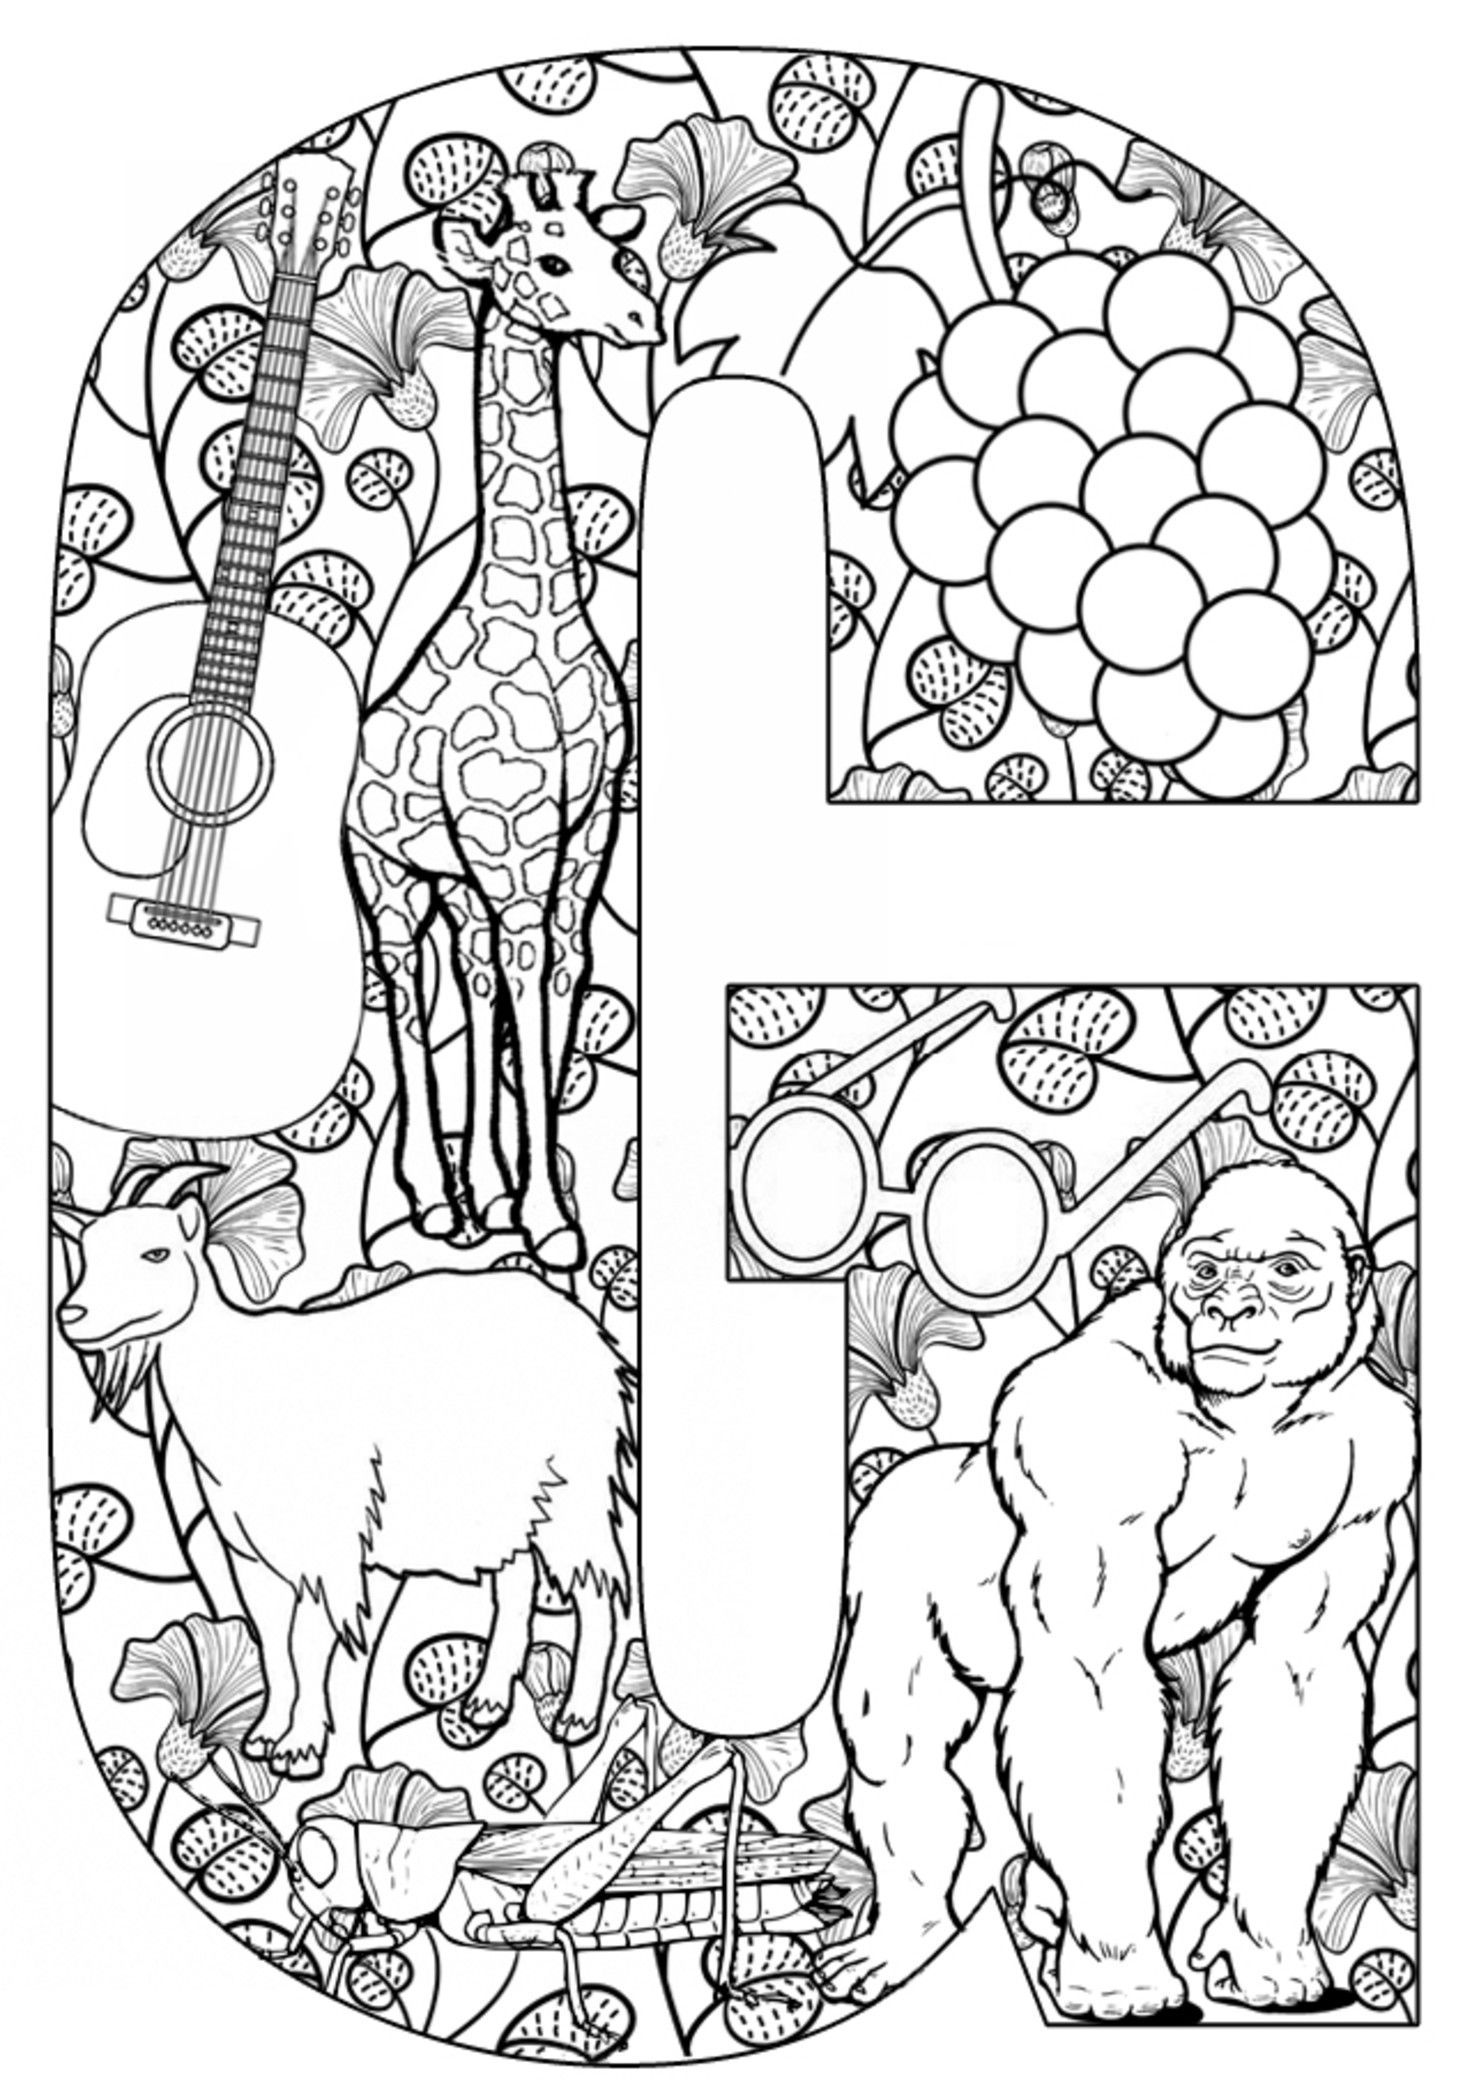 Teach Your Kids Their Abcs The Easy Way With Free Printables | Adult - Free Printable Letter G Coloring Pages